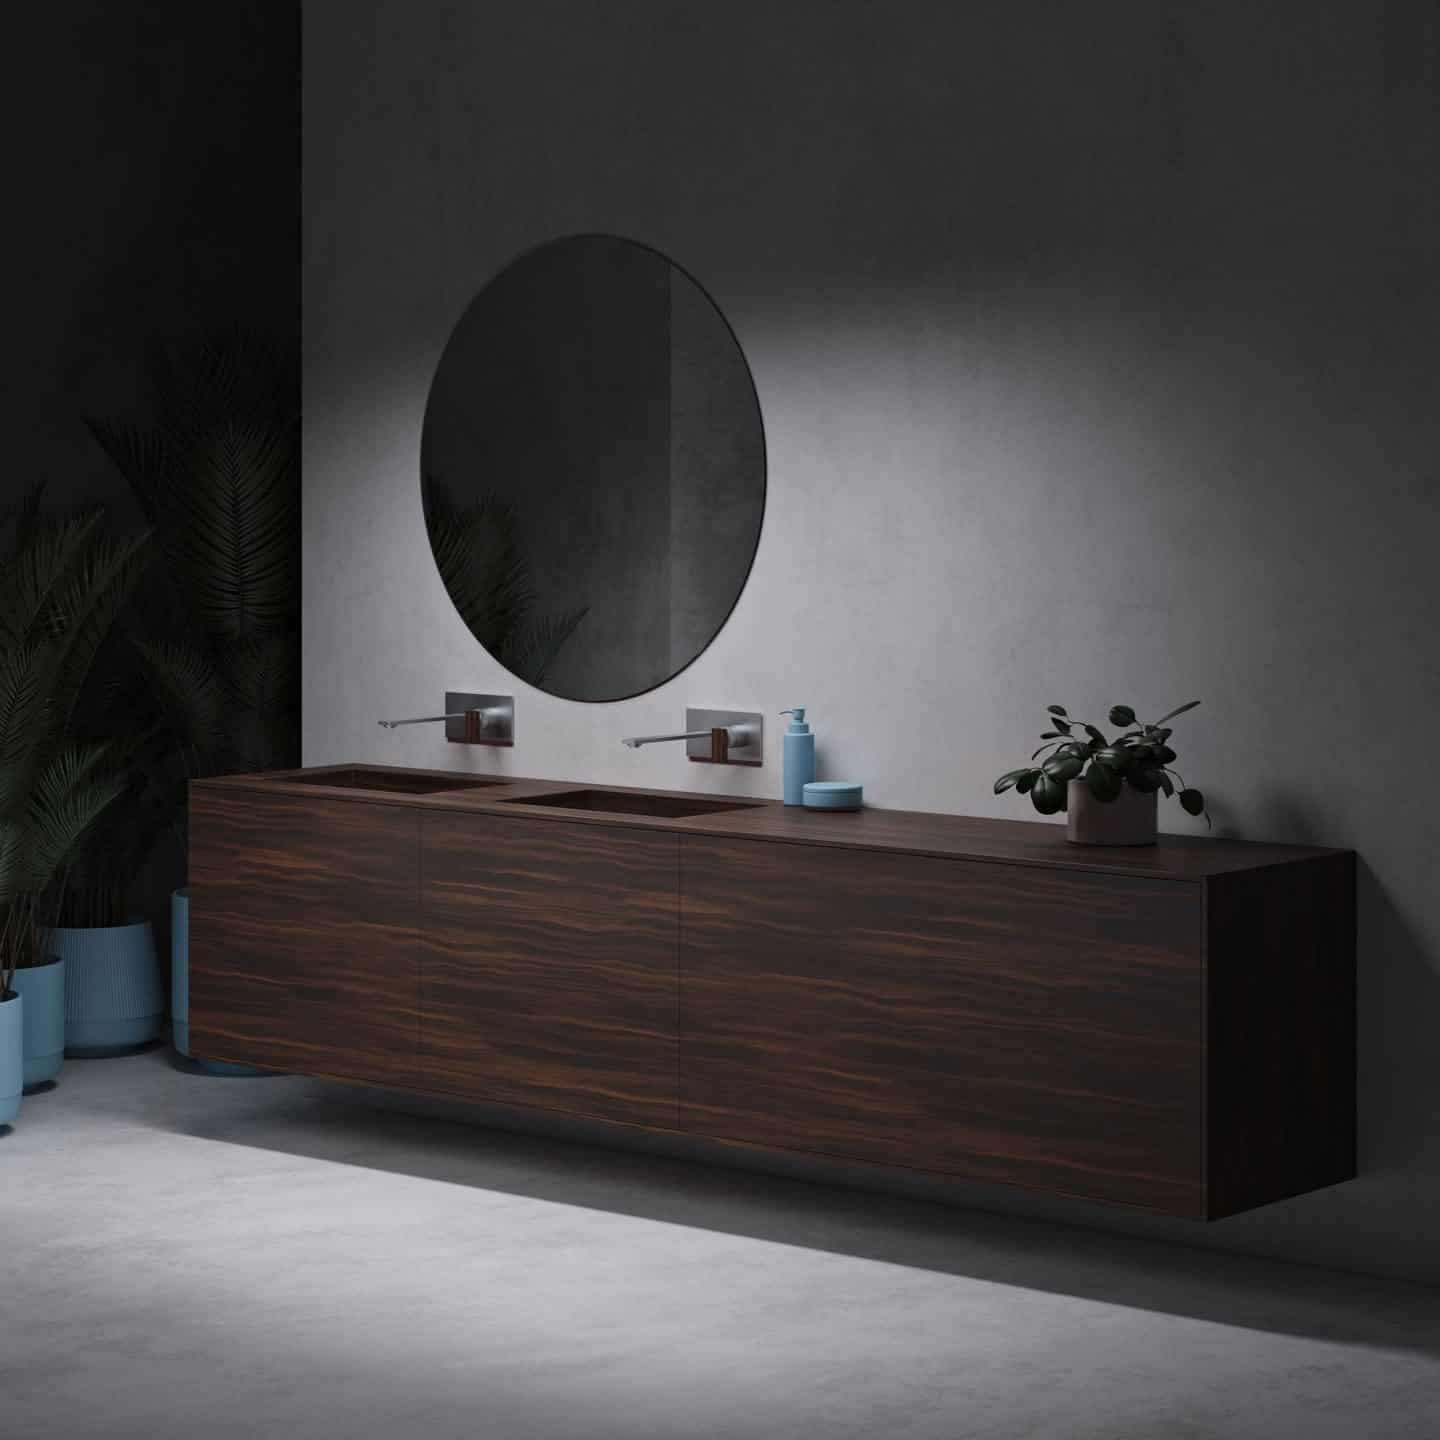 New Coloured Corian Bathroom Collection from Riluxa. Wood effect corin bathroom basin with wall-mounted tap above.